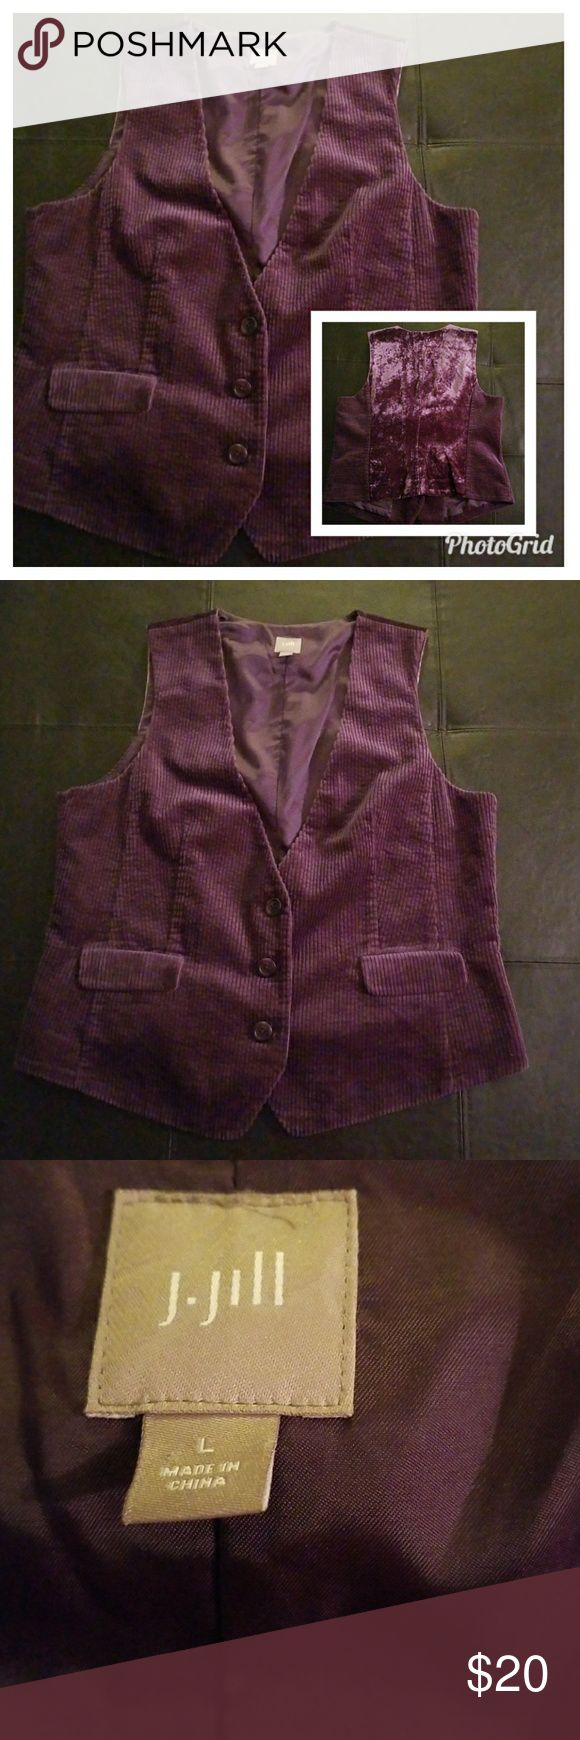 J. Jill Corduroy and Velvet Berry Purple Vest This is a very beautiful women's vest made by J.Jill. Color is berry purple and it is size large. Excellent, like new condition. Front panel 100% cotton Back panel 100% rayon Lining 100% polyester and it is machine wash cold with like color and tumble dry low. Vest has a 3 button front with 2 fake front pockets and it is RN number 97641. Measures 20.5 inches long and 23 inches armpit to armpit. J. Jill Jackets & Coats Vests